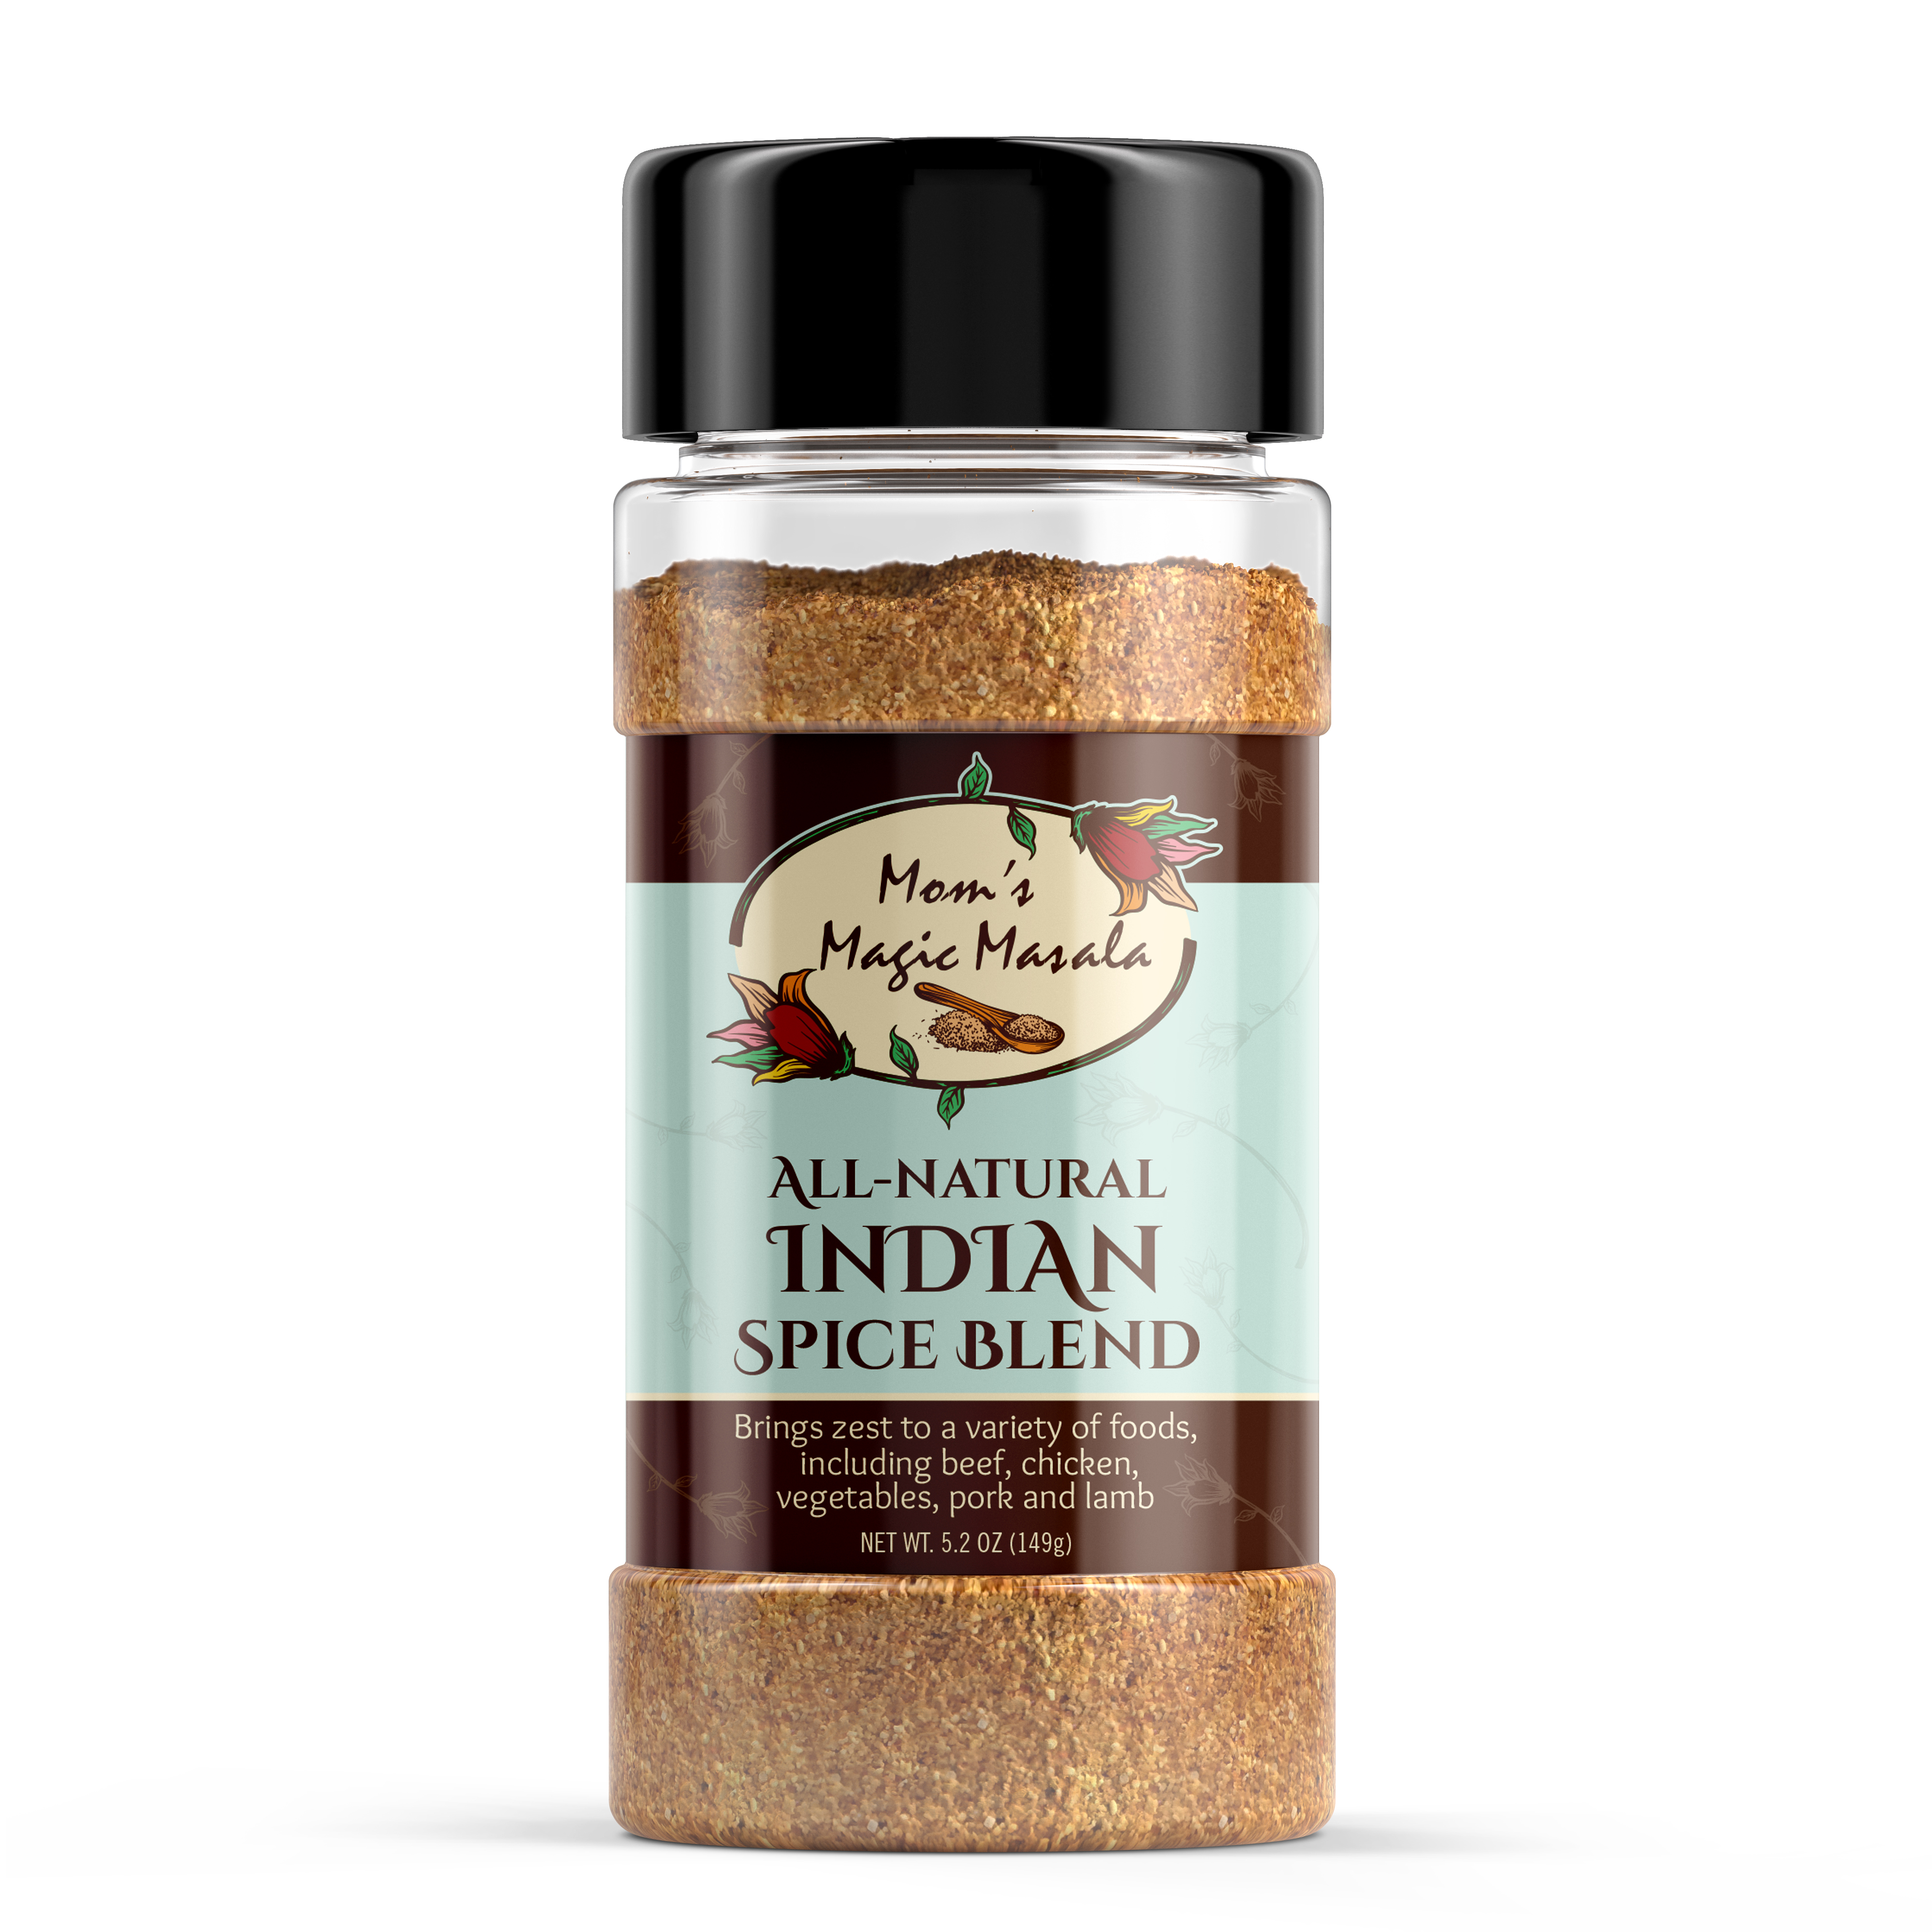 Mom's Magic Masala All-Natural Indian Spice Blend